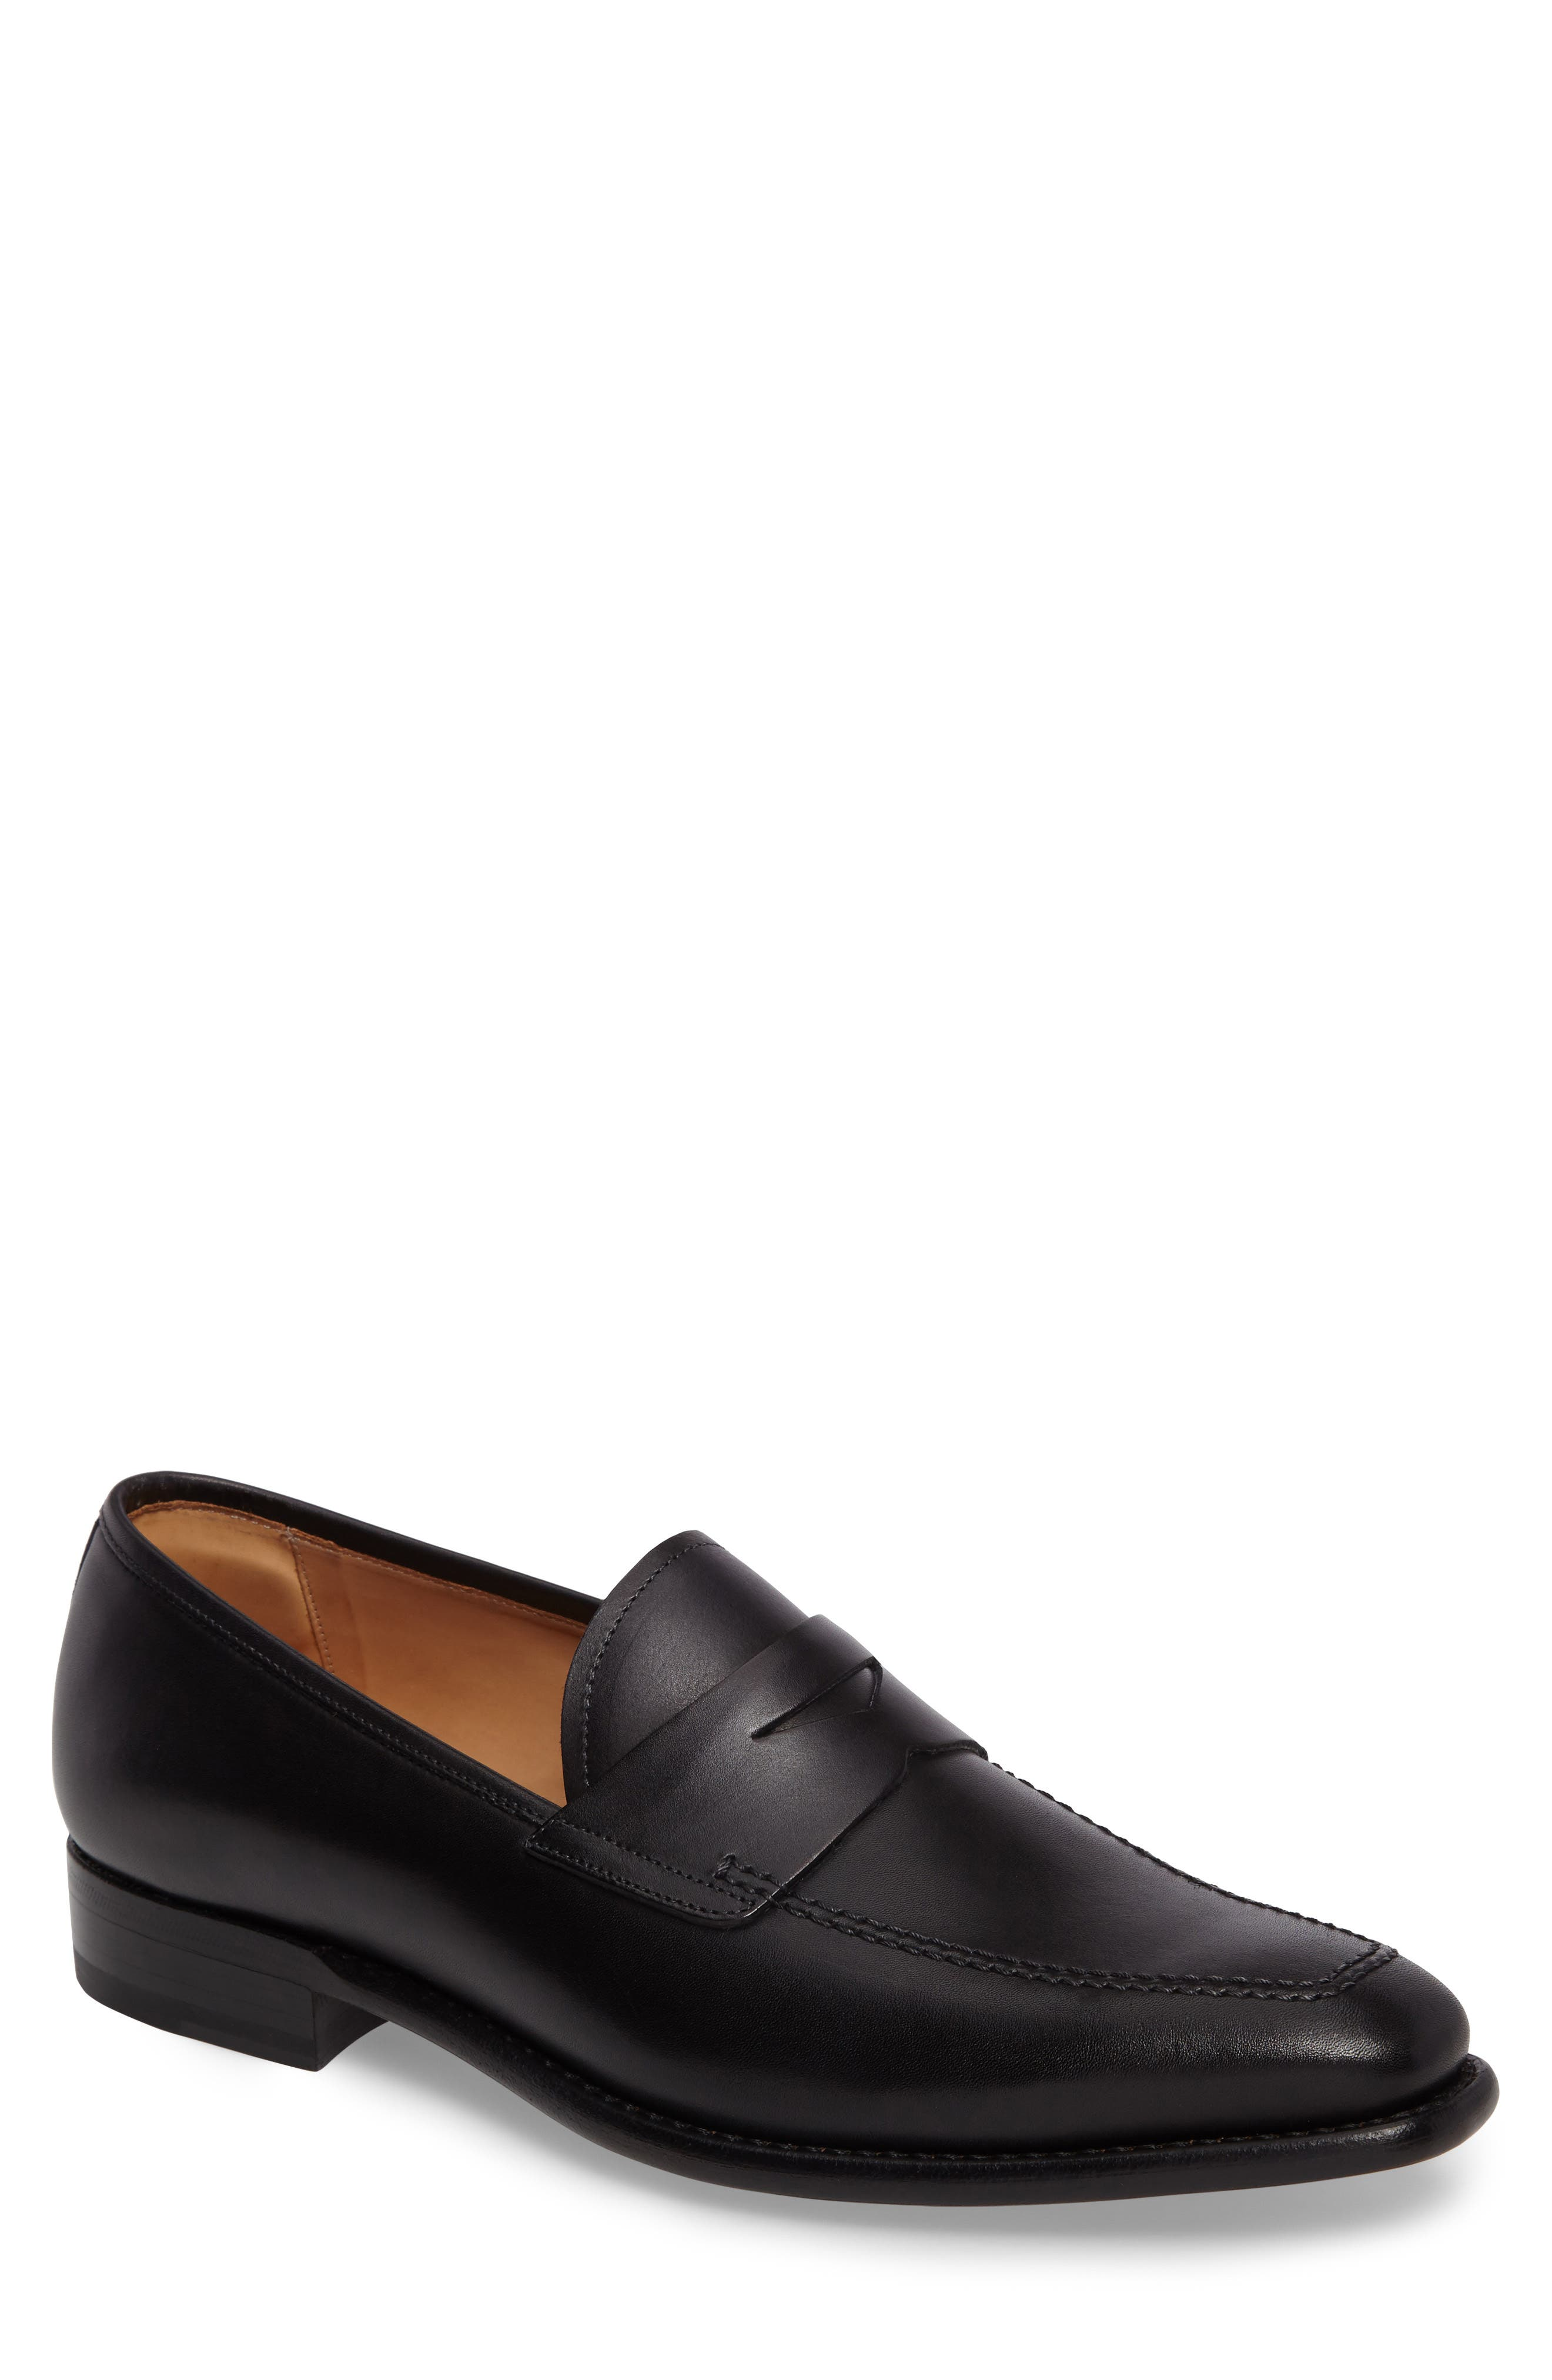 Claude Penny Loafer,                             Main thumbnail 1, color,                             008